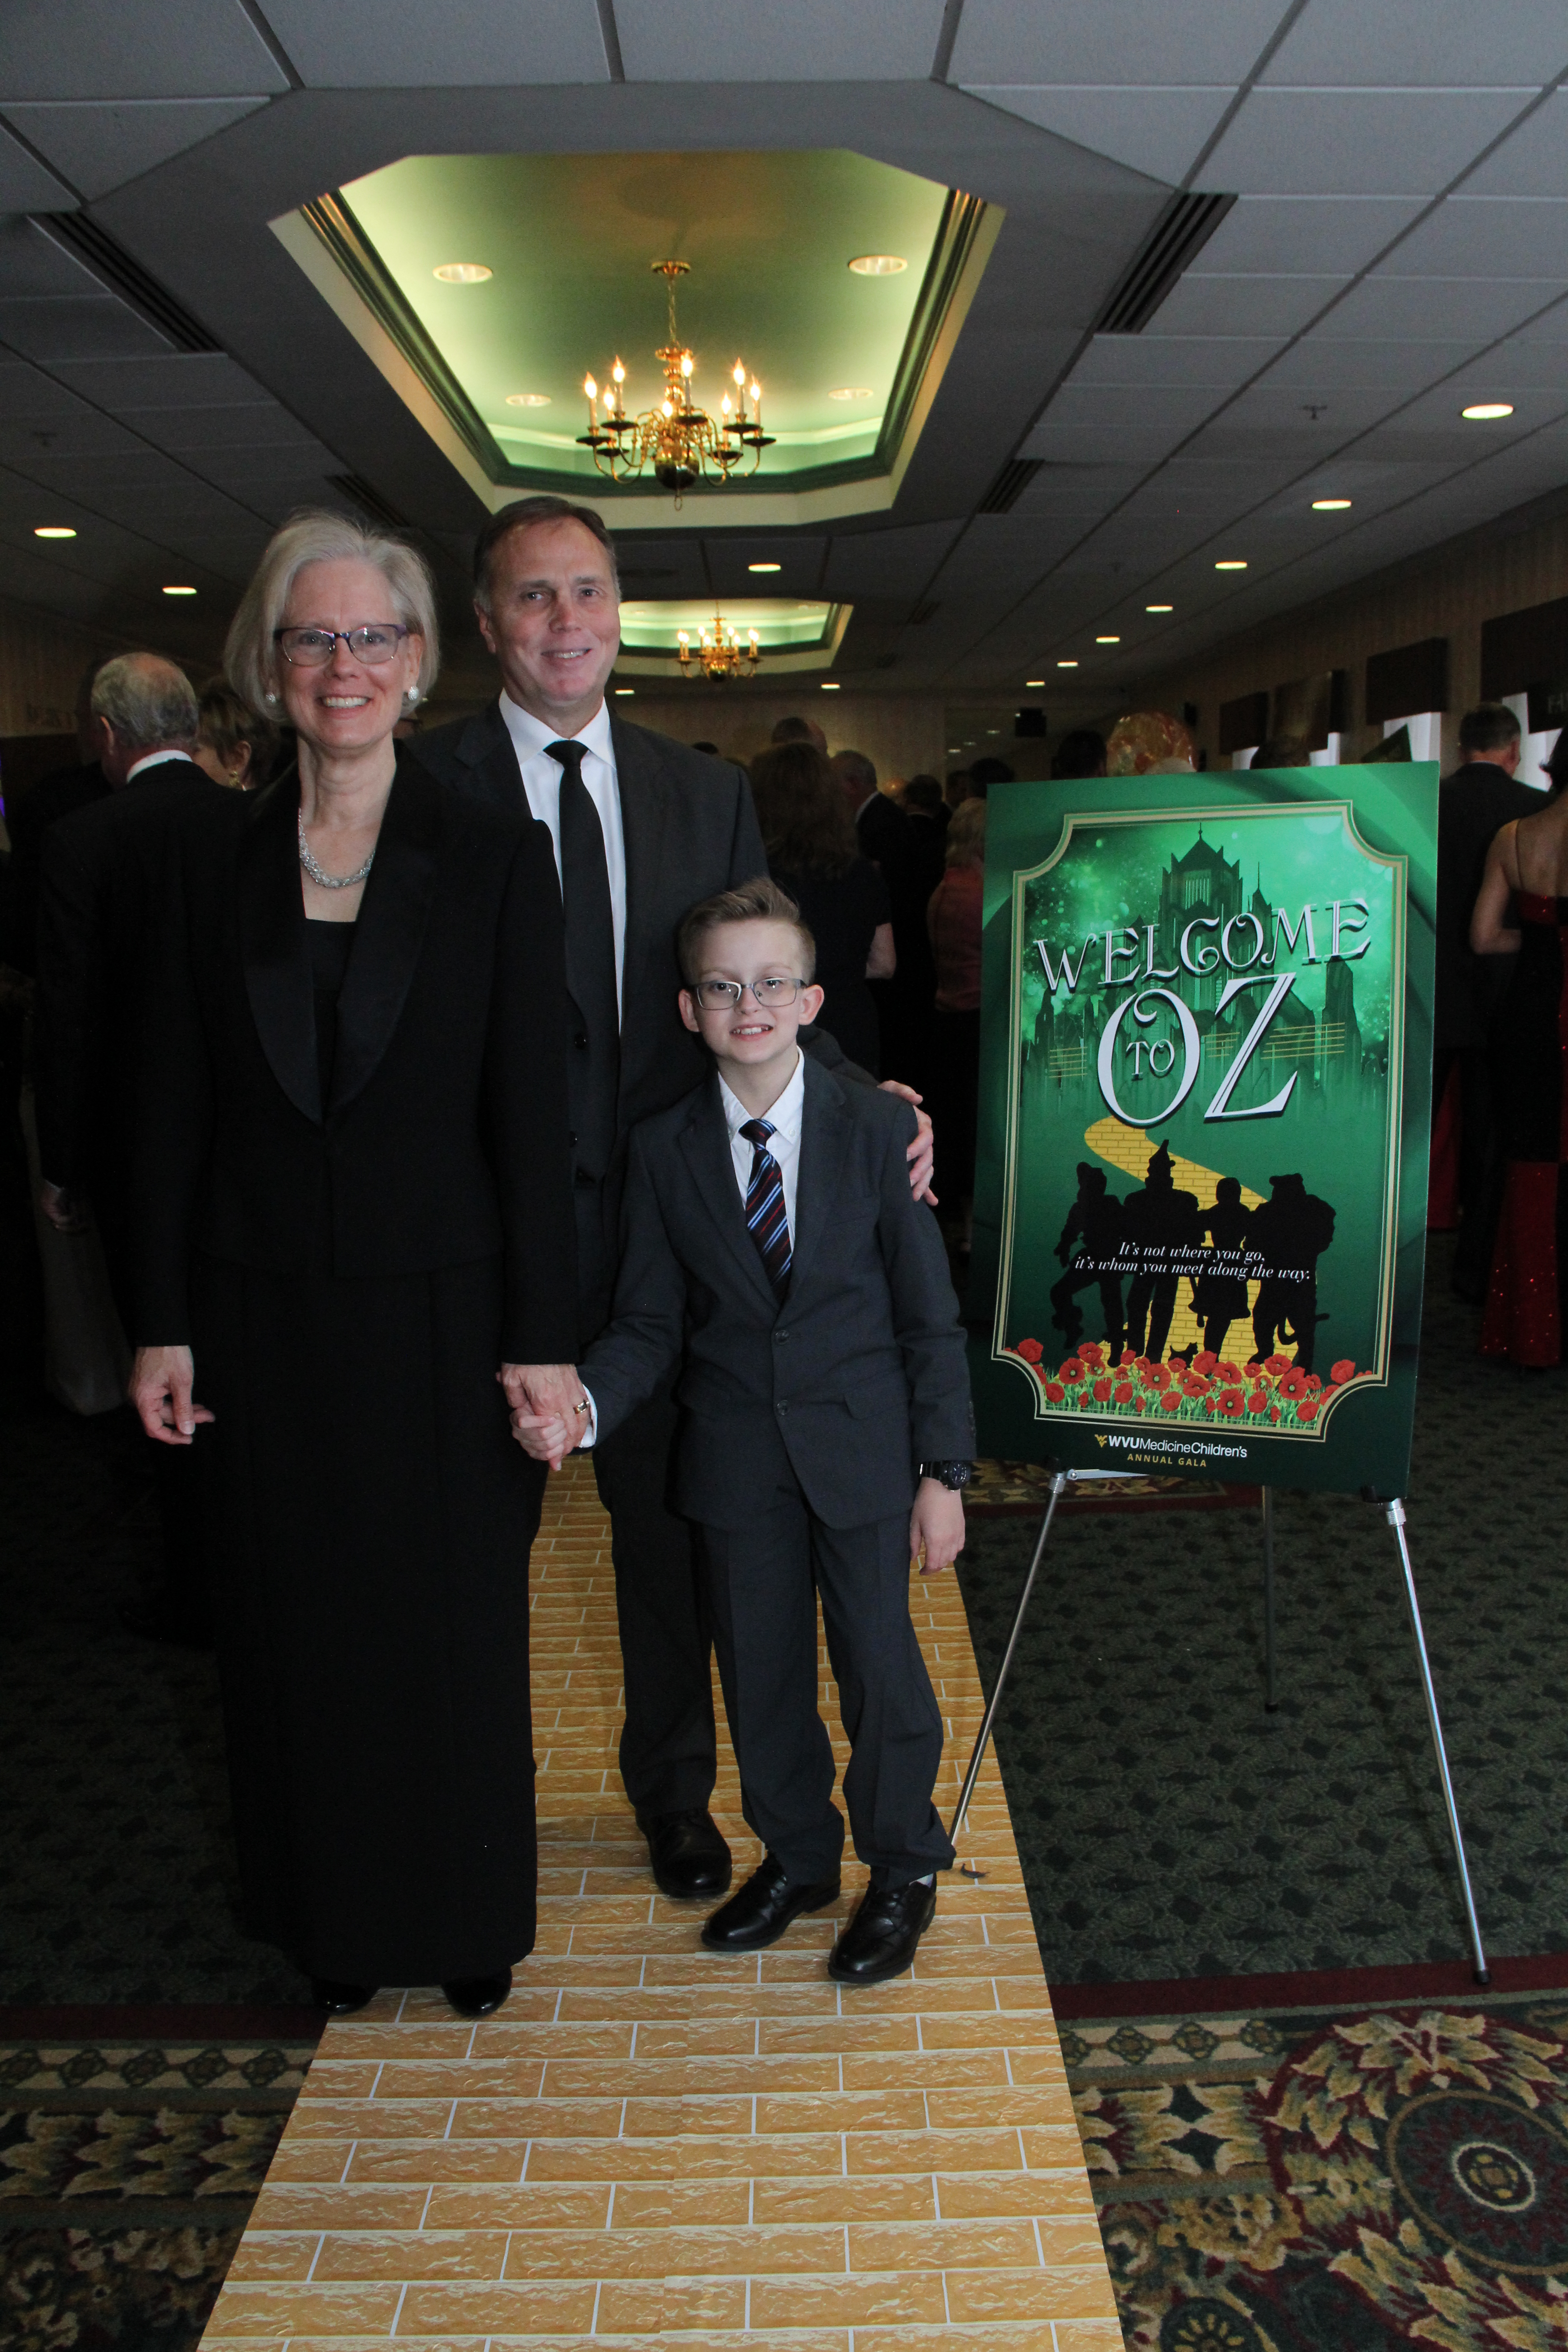 Wyatt Brady, the miracle story child for the 2019 WVU Medicine Children's Gala in the Eastern Panhandle, is shown walking the yellow brick road with his parents, Helena and Lee Brady.